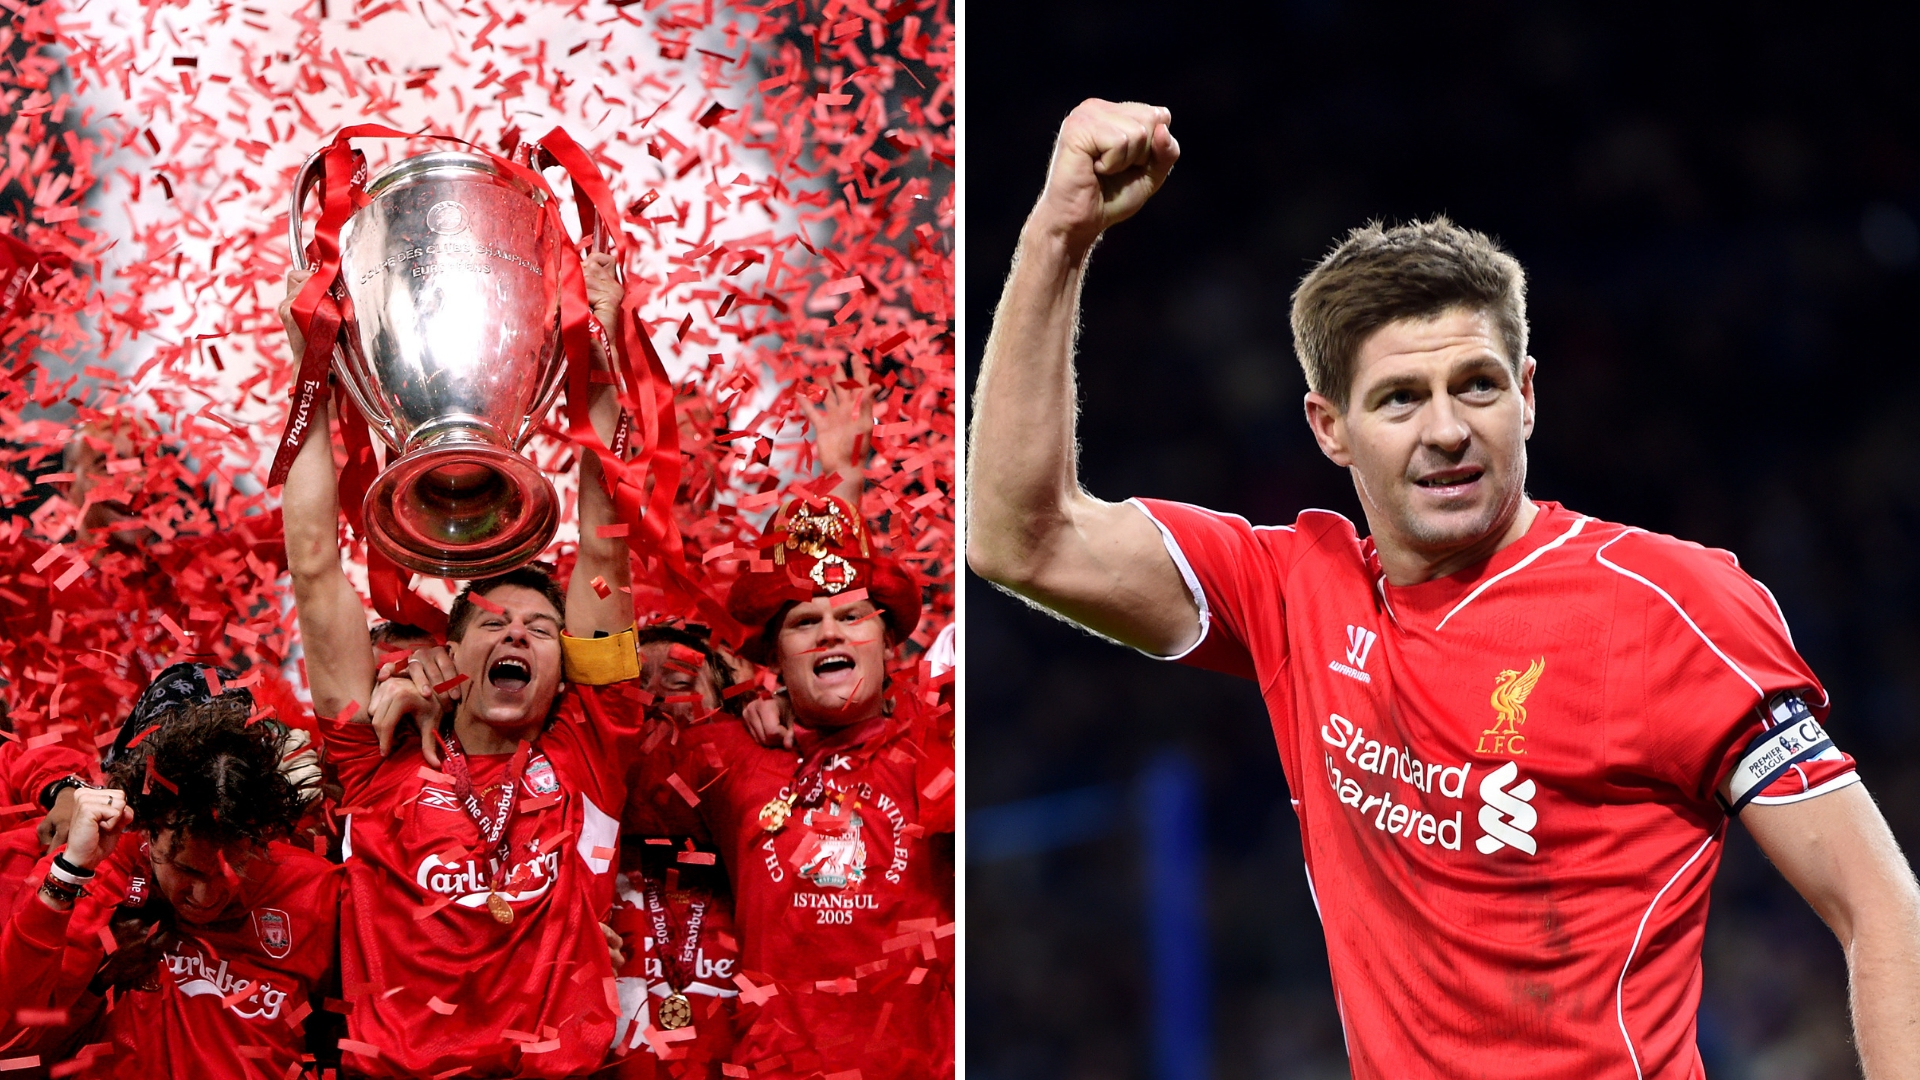 Amazon Scores Big With Steven Gerrard Documentary Coming To Prime Video